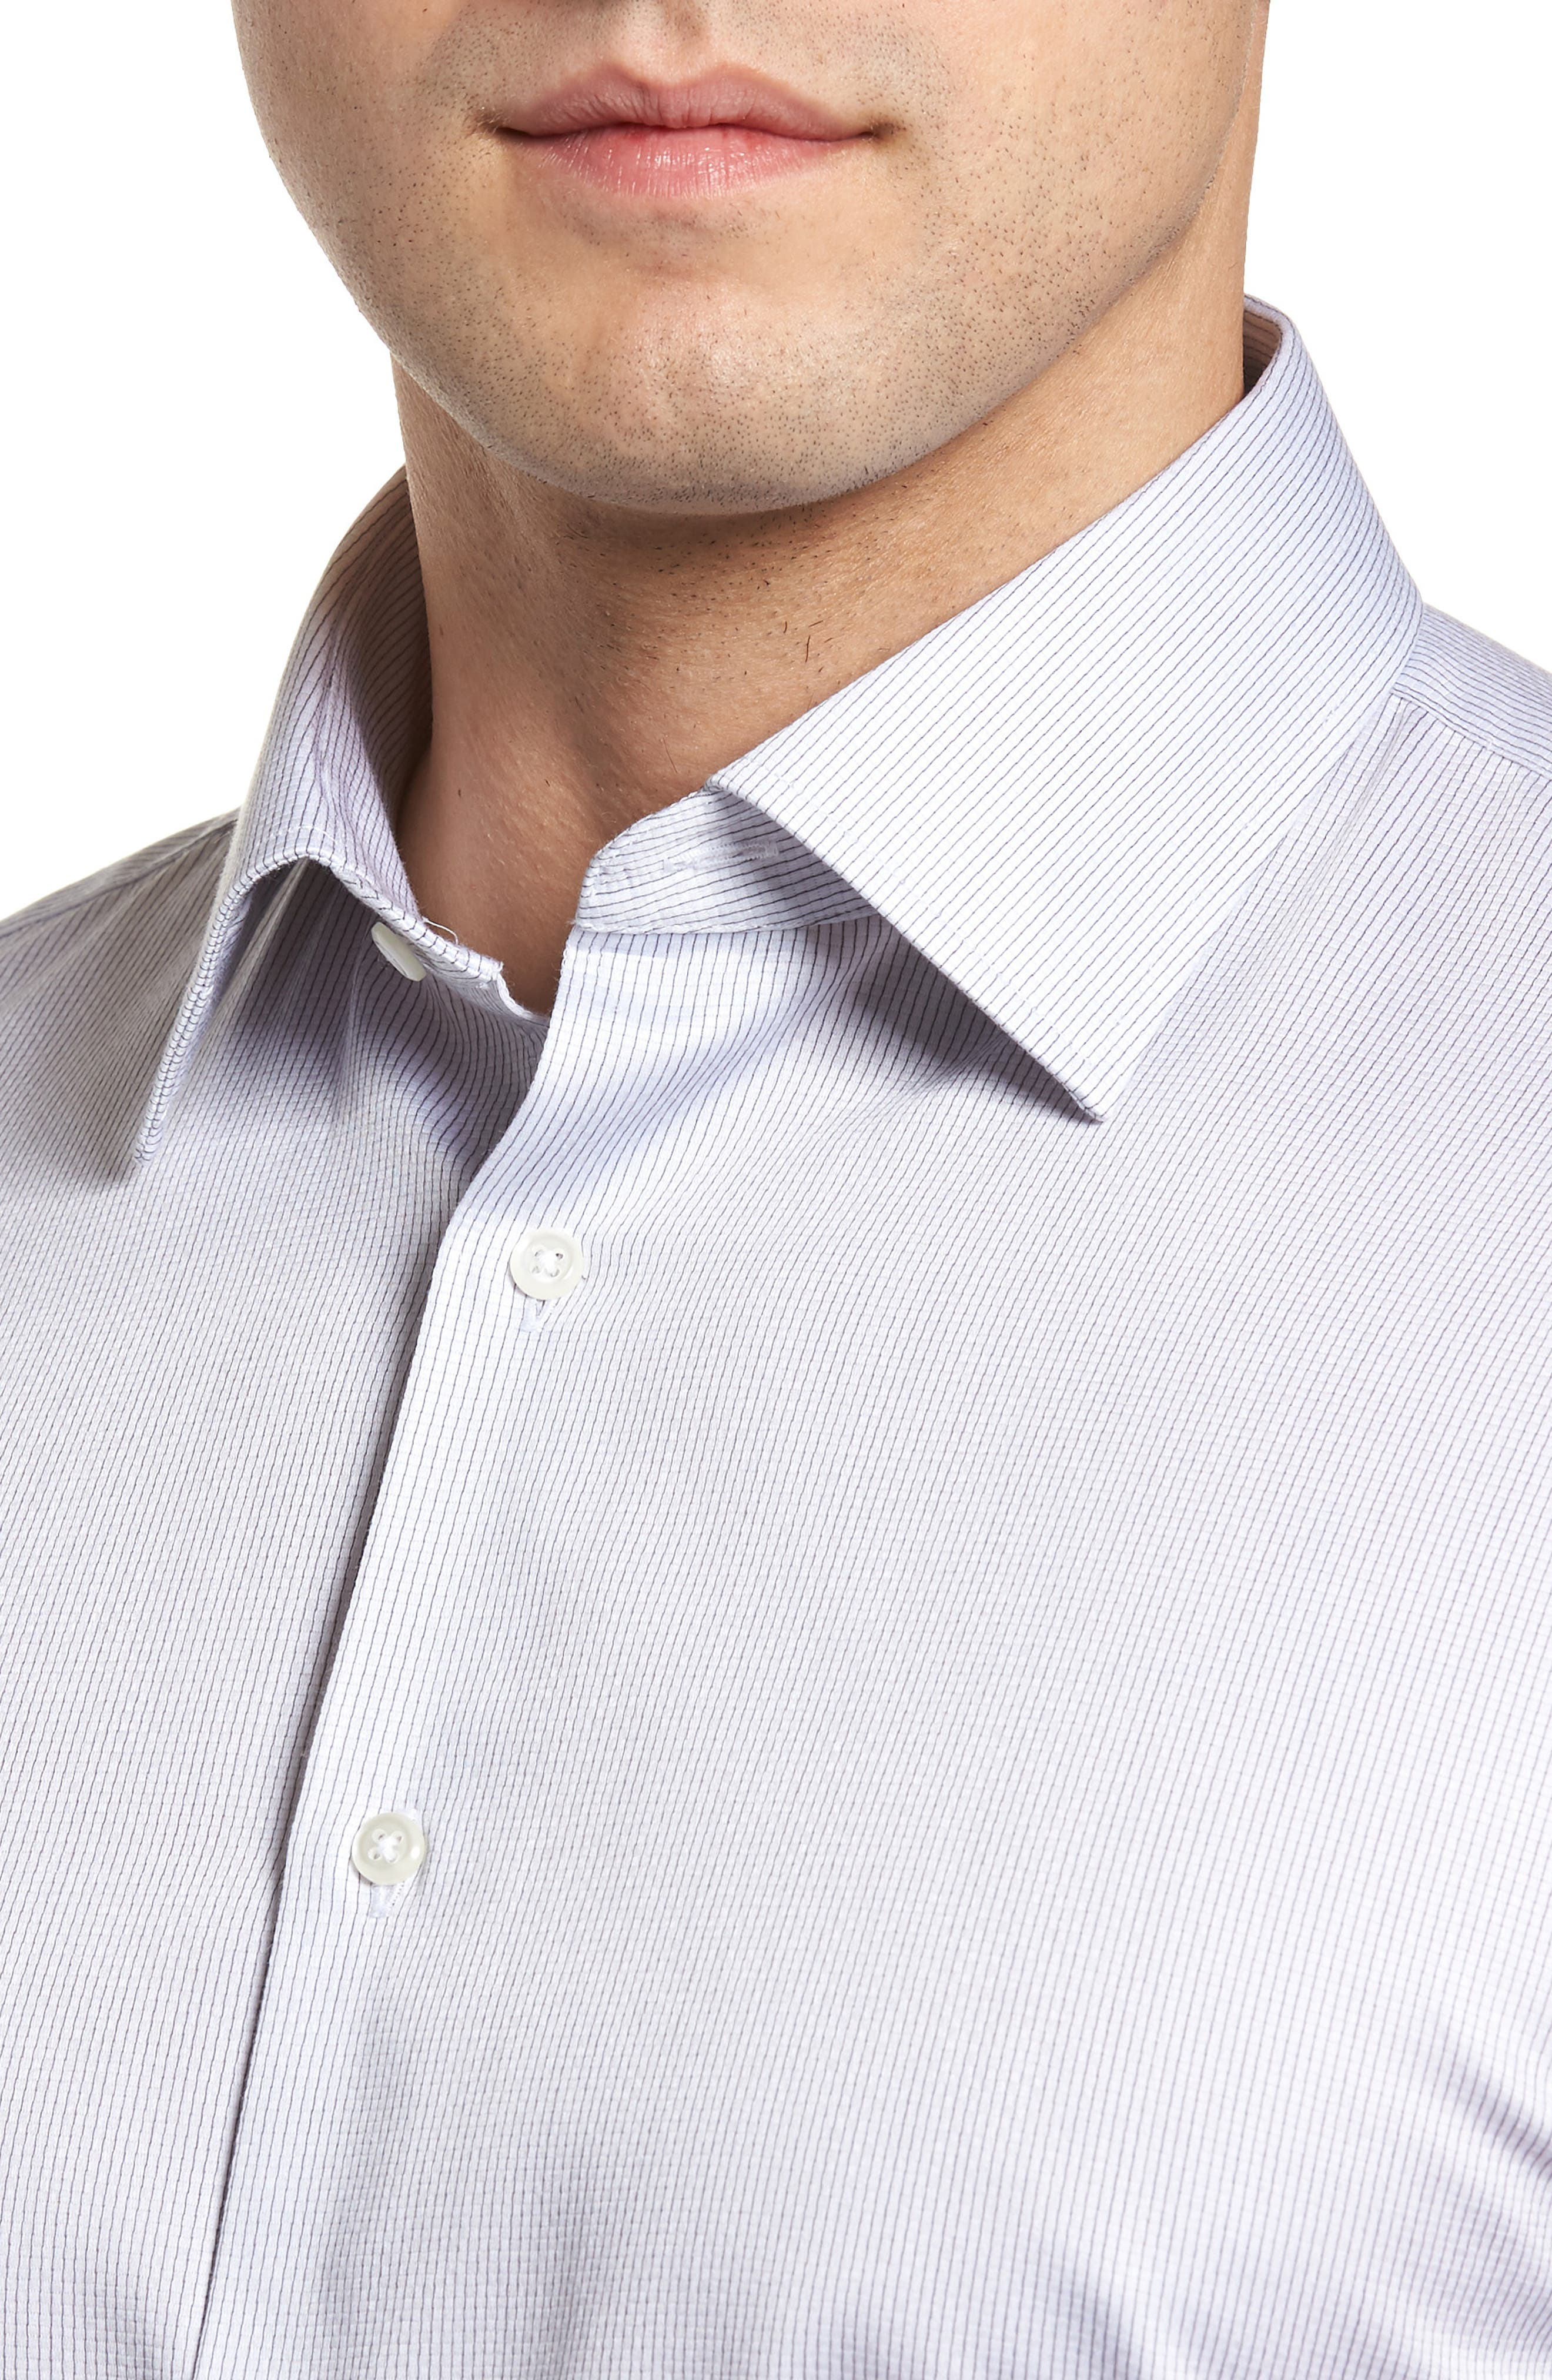 Traditional Fit Stripe Dress Shirt,                             Alternate thumbnail 2, color,                             050